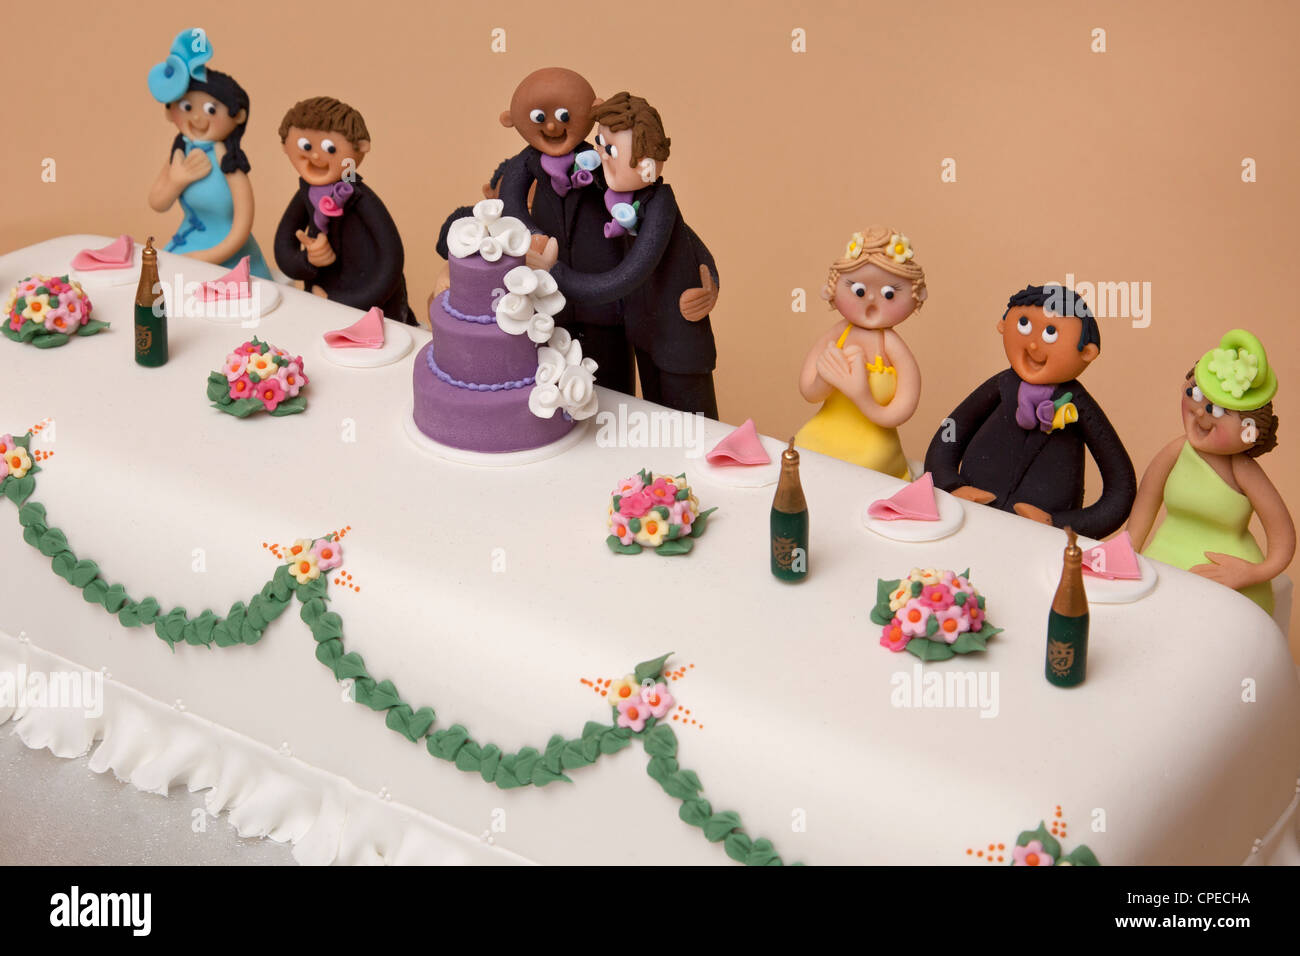 Gay Wedding Cake Stock Photos   Gay Wedding Cake Stock Images   Alamy top table wedding cake of gay couples marriage   Stock Image